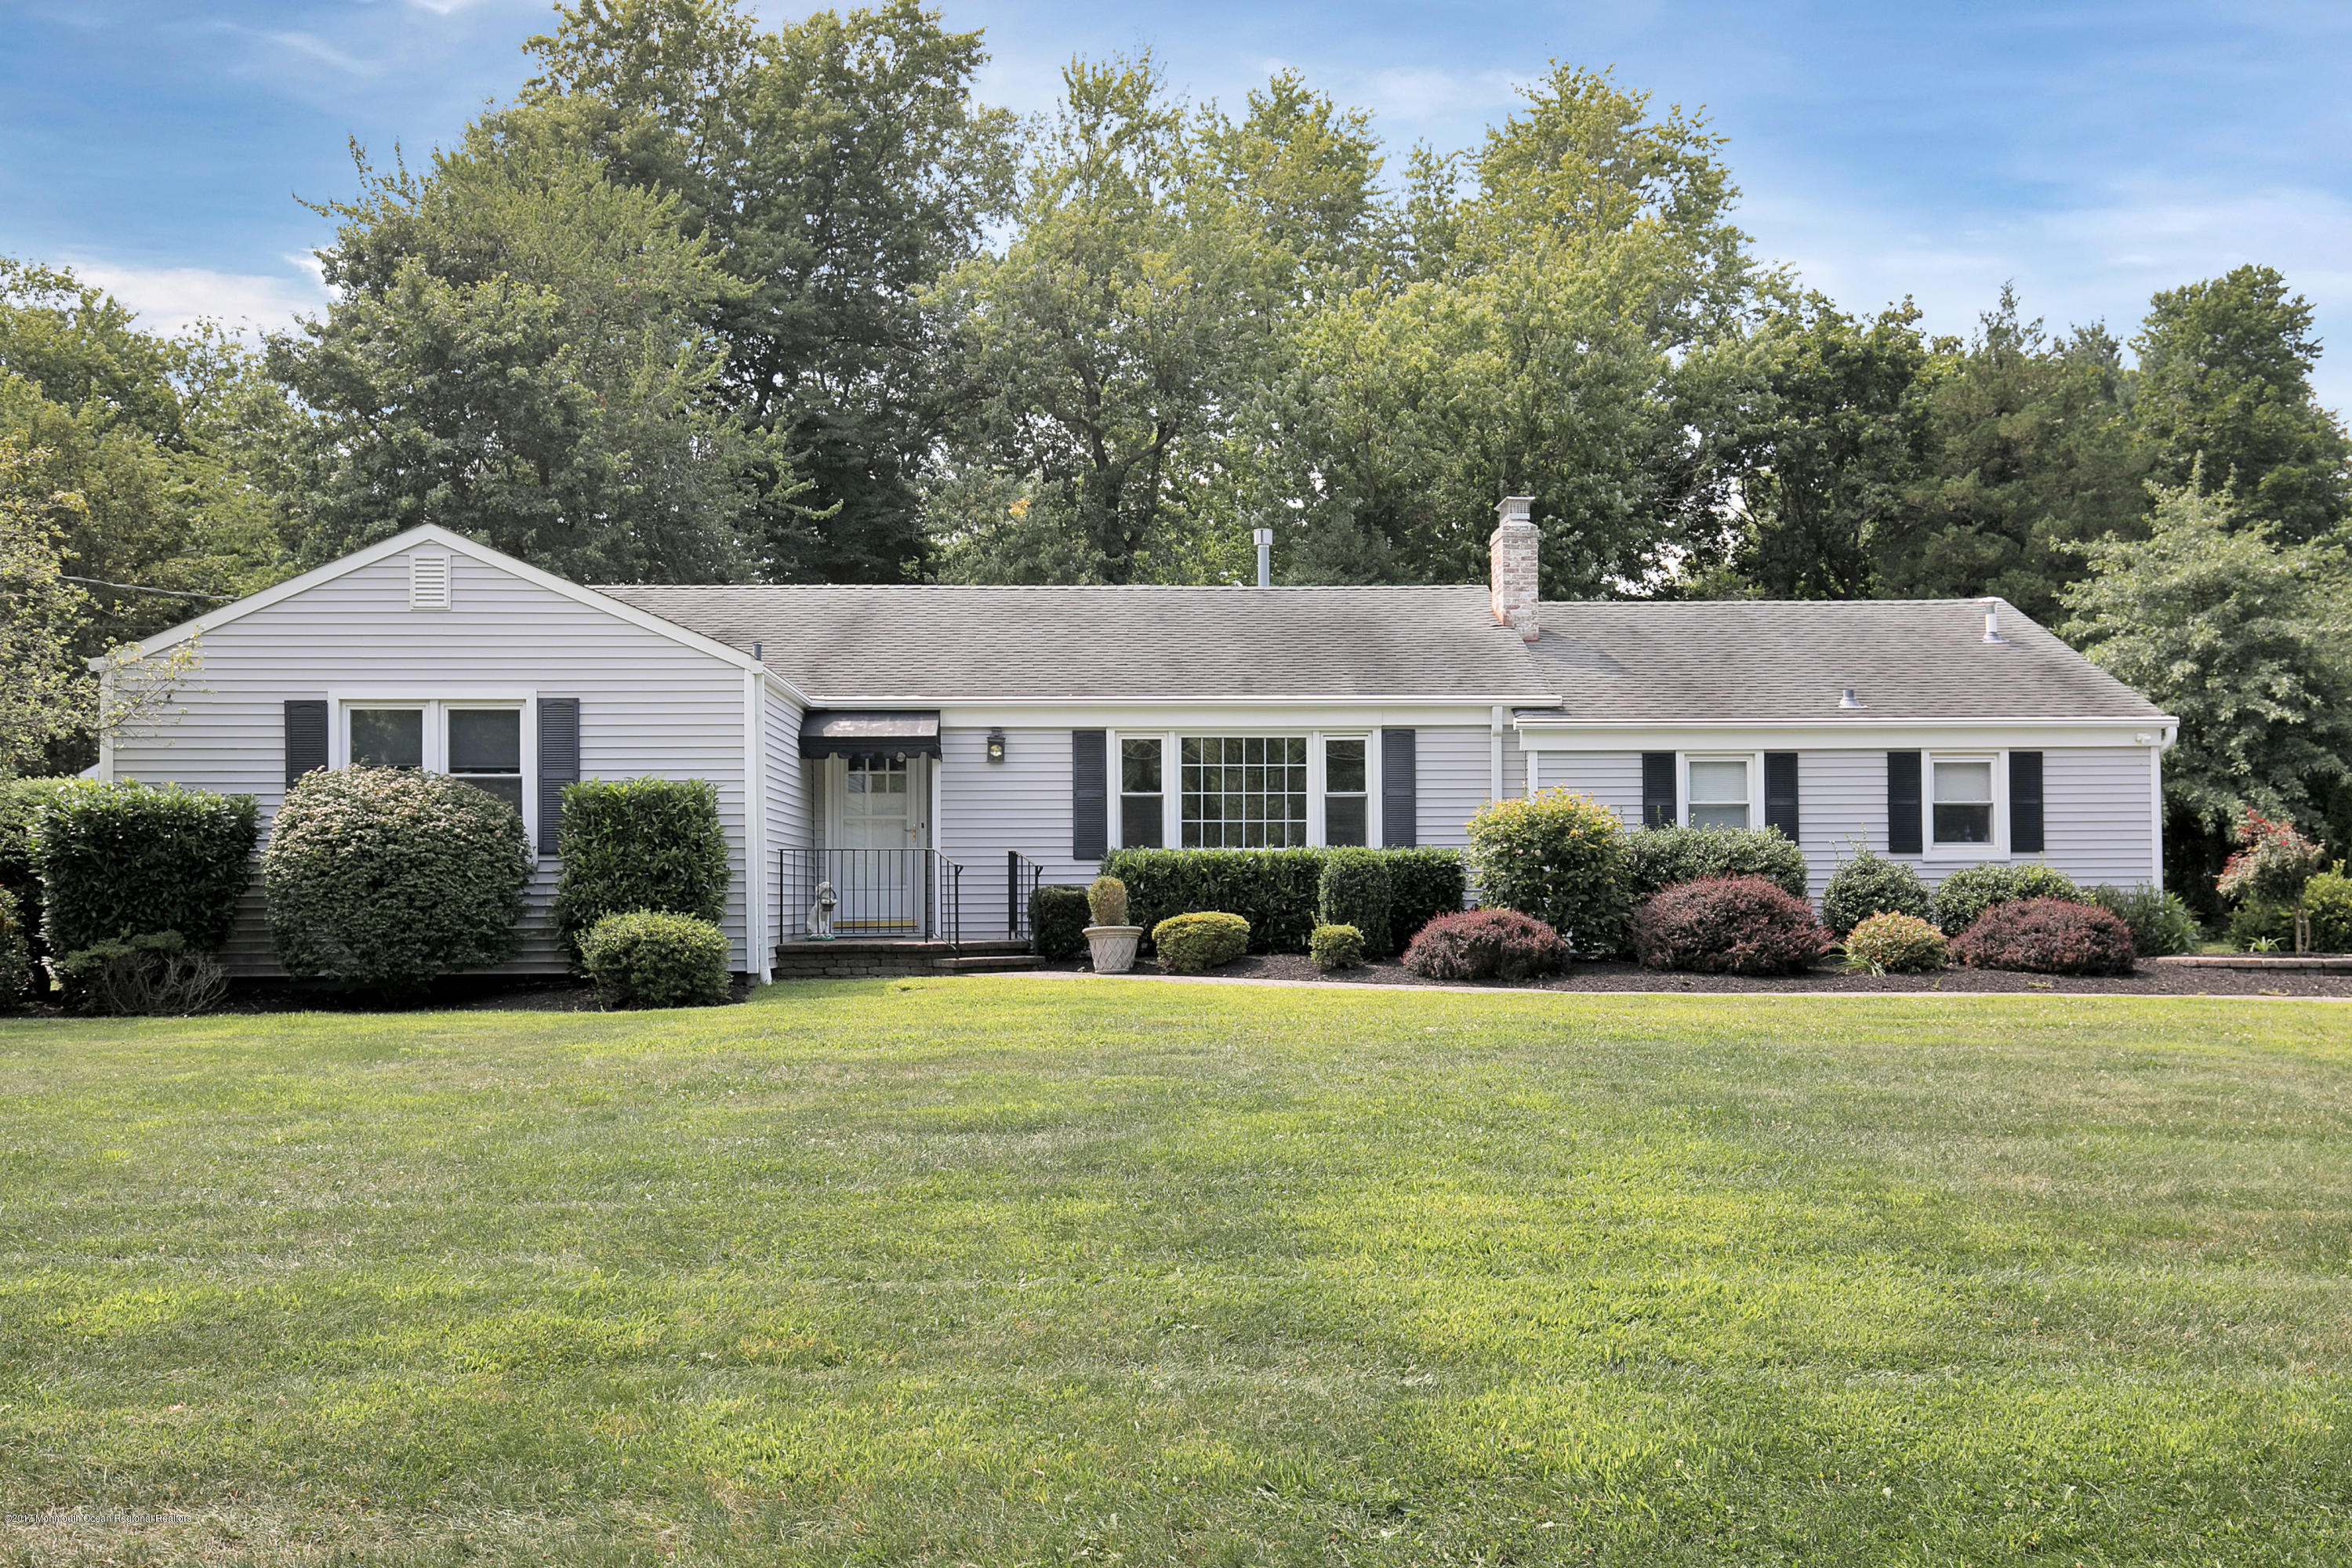 44 BERNARD TERRACE, LITTLE SILVER, NJ 07739